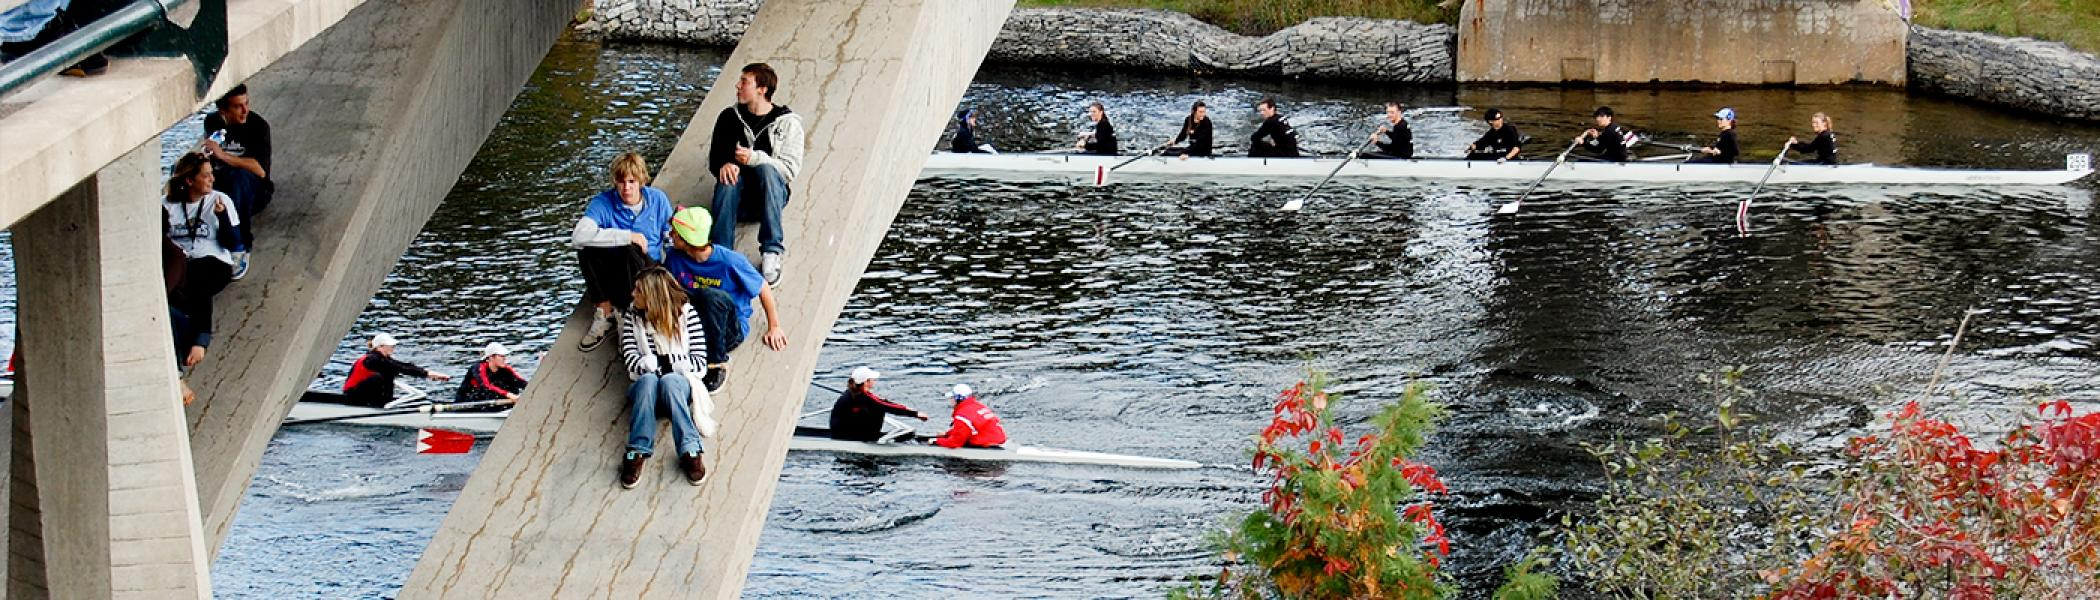 Rowers racing underneath a bridge while students attempt to watch from the bridge supports in a dangerous manner